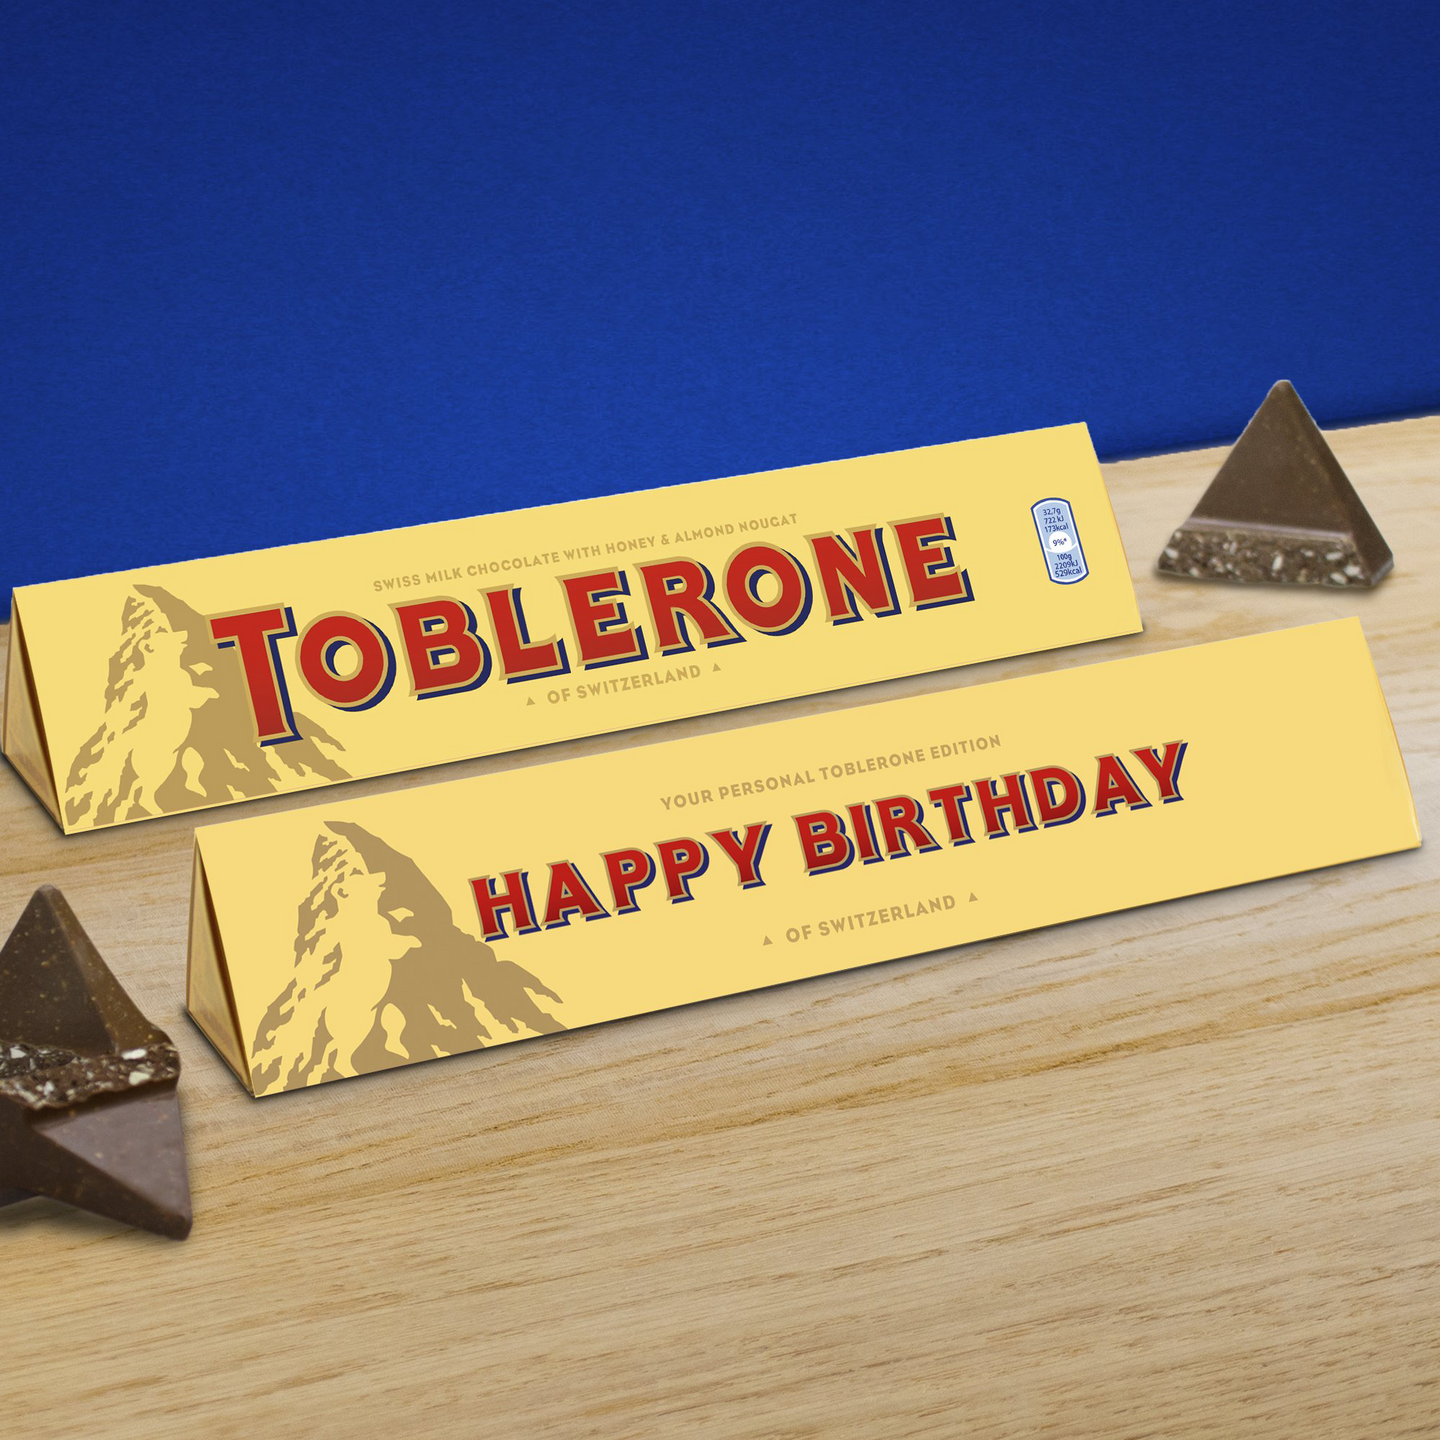 360g Milk Chocolate Toblerone with 'Happy Birthday' Sleeve